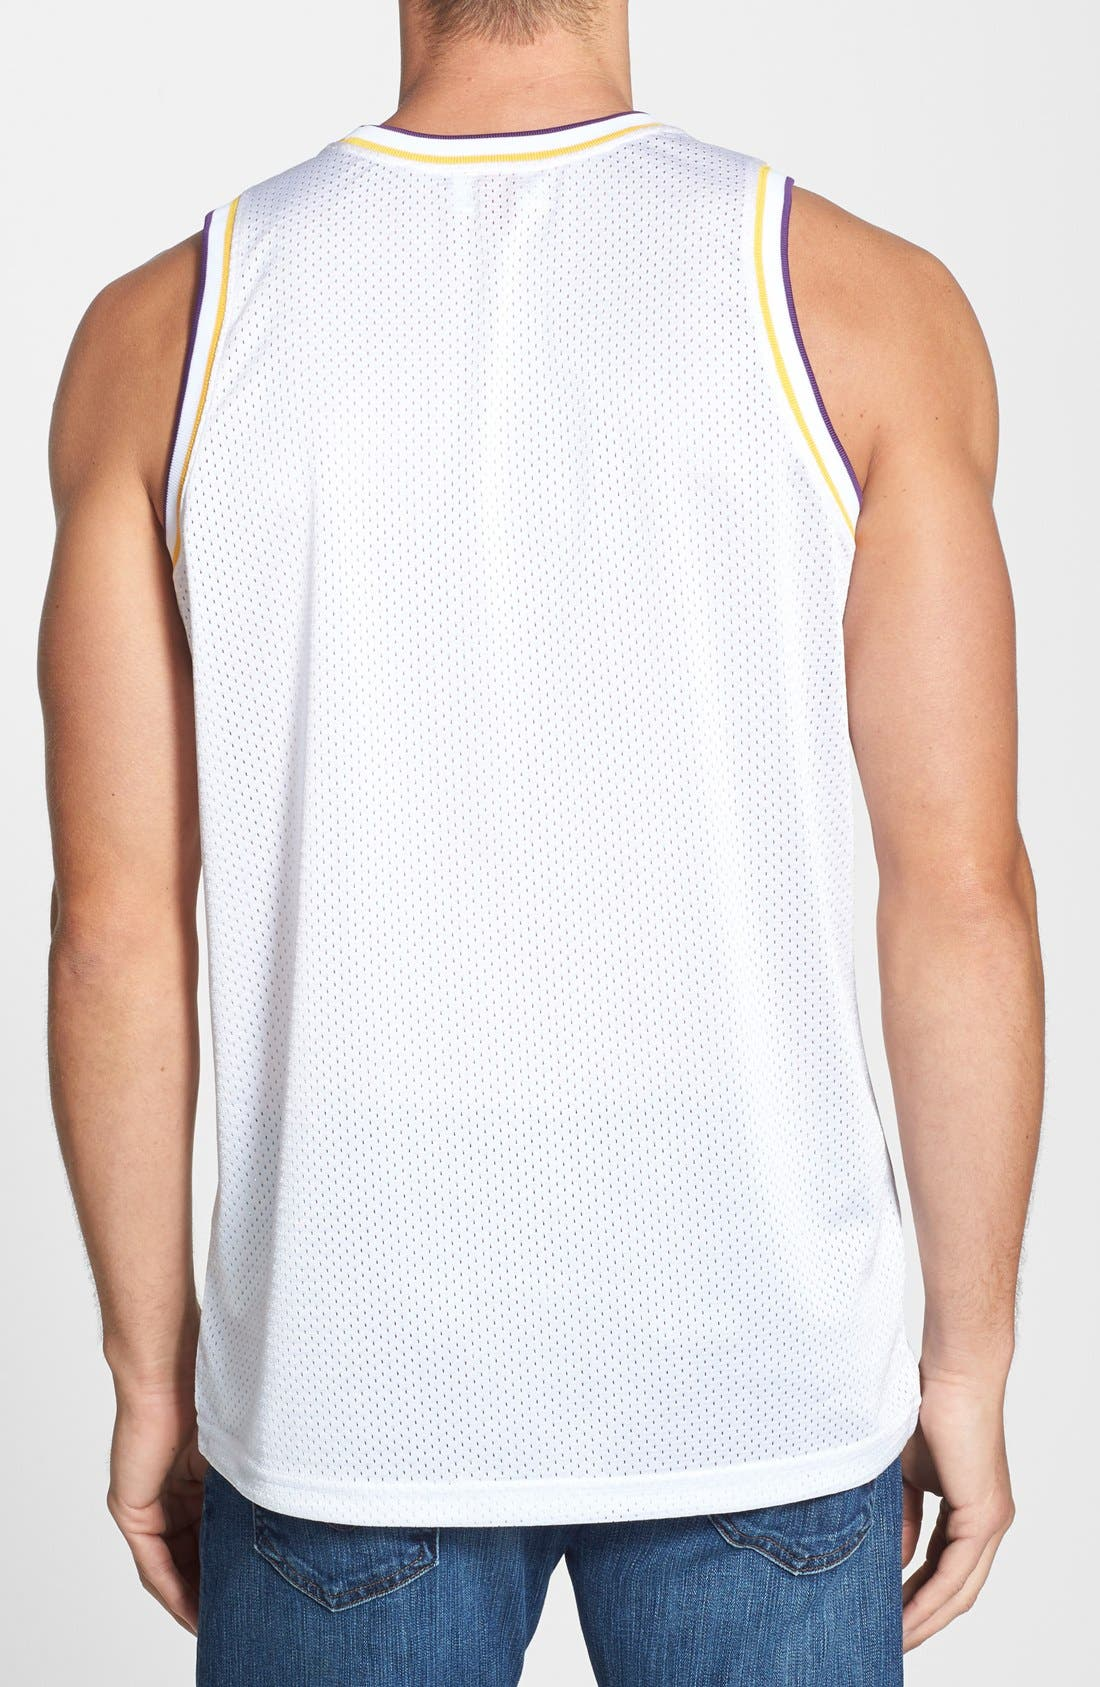 Alternate Image 2  - Mitchell & Ness 'Los Angeles Lakers - Home Stand' Tank Top